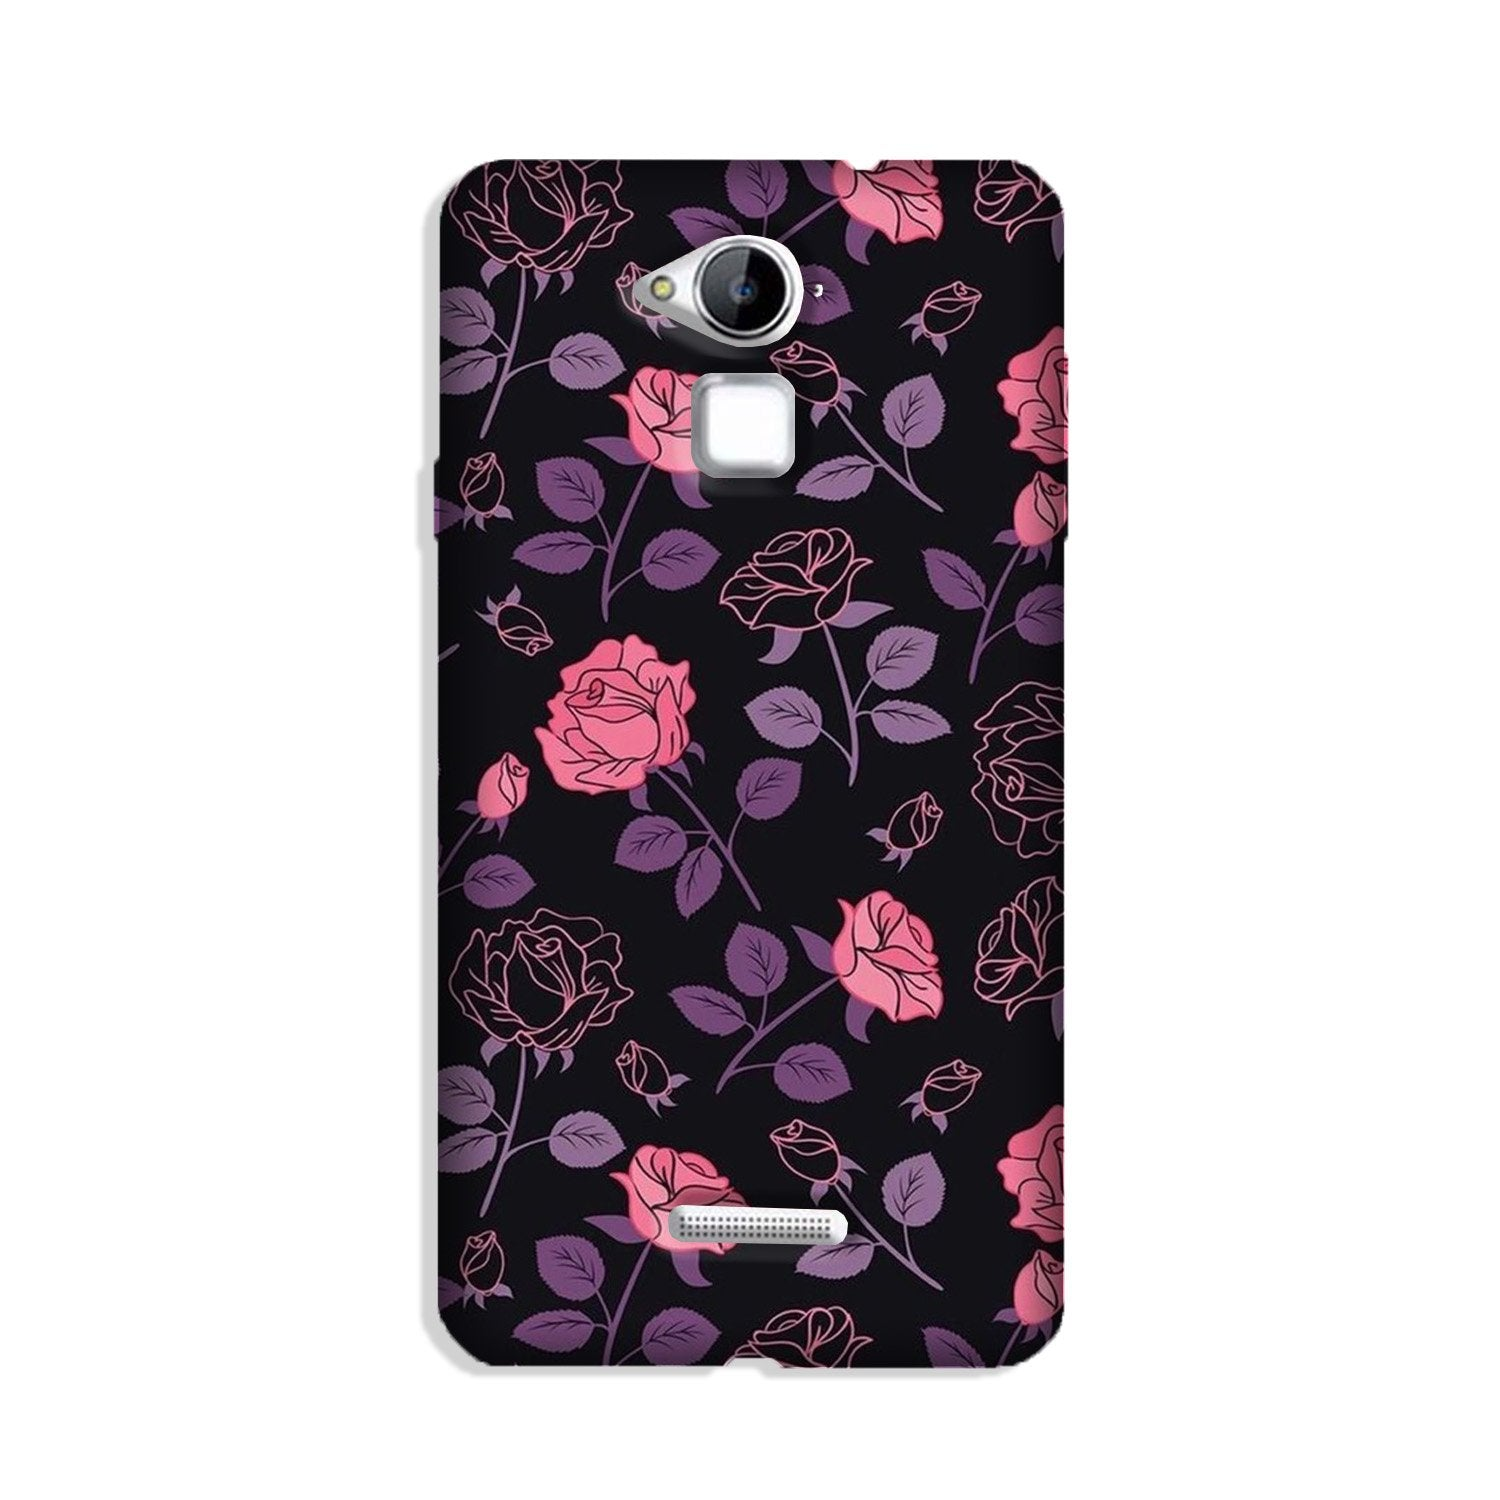 Rose Pattern Case for Coolpad Note 3